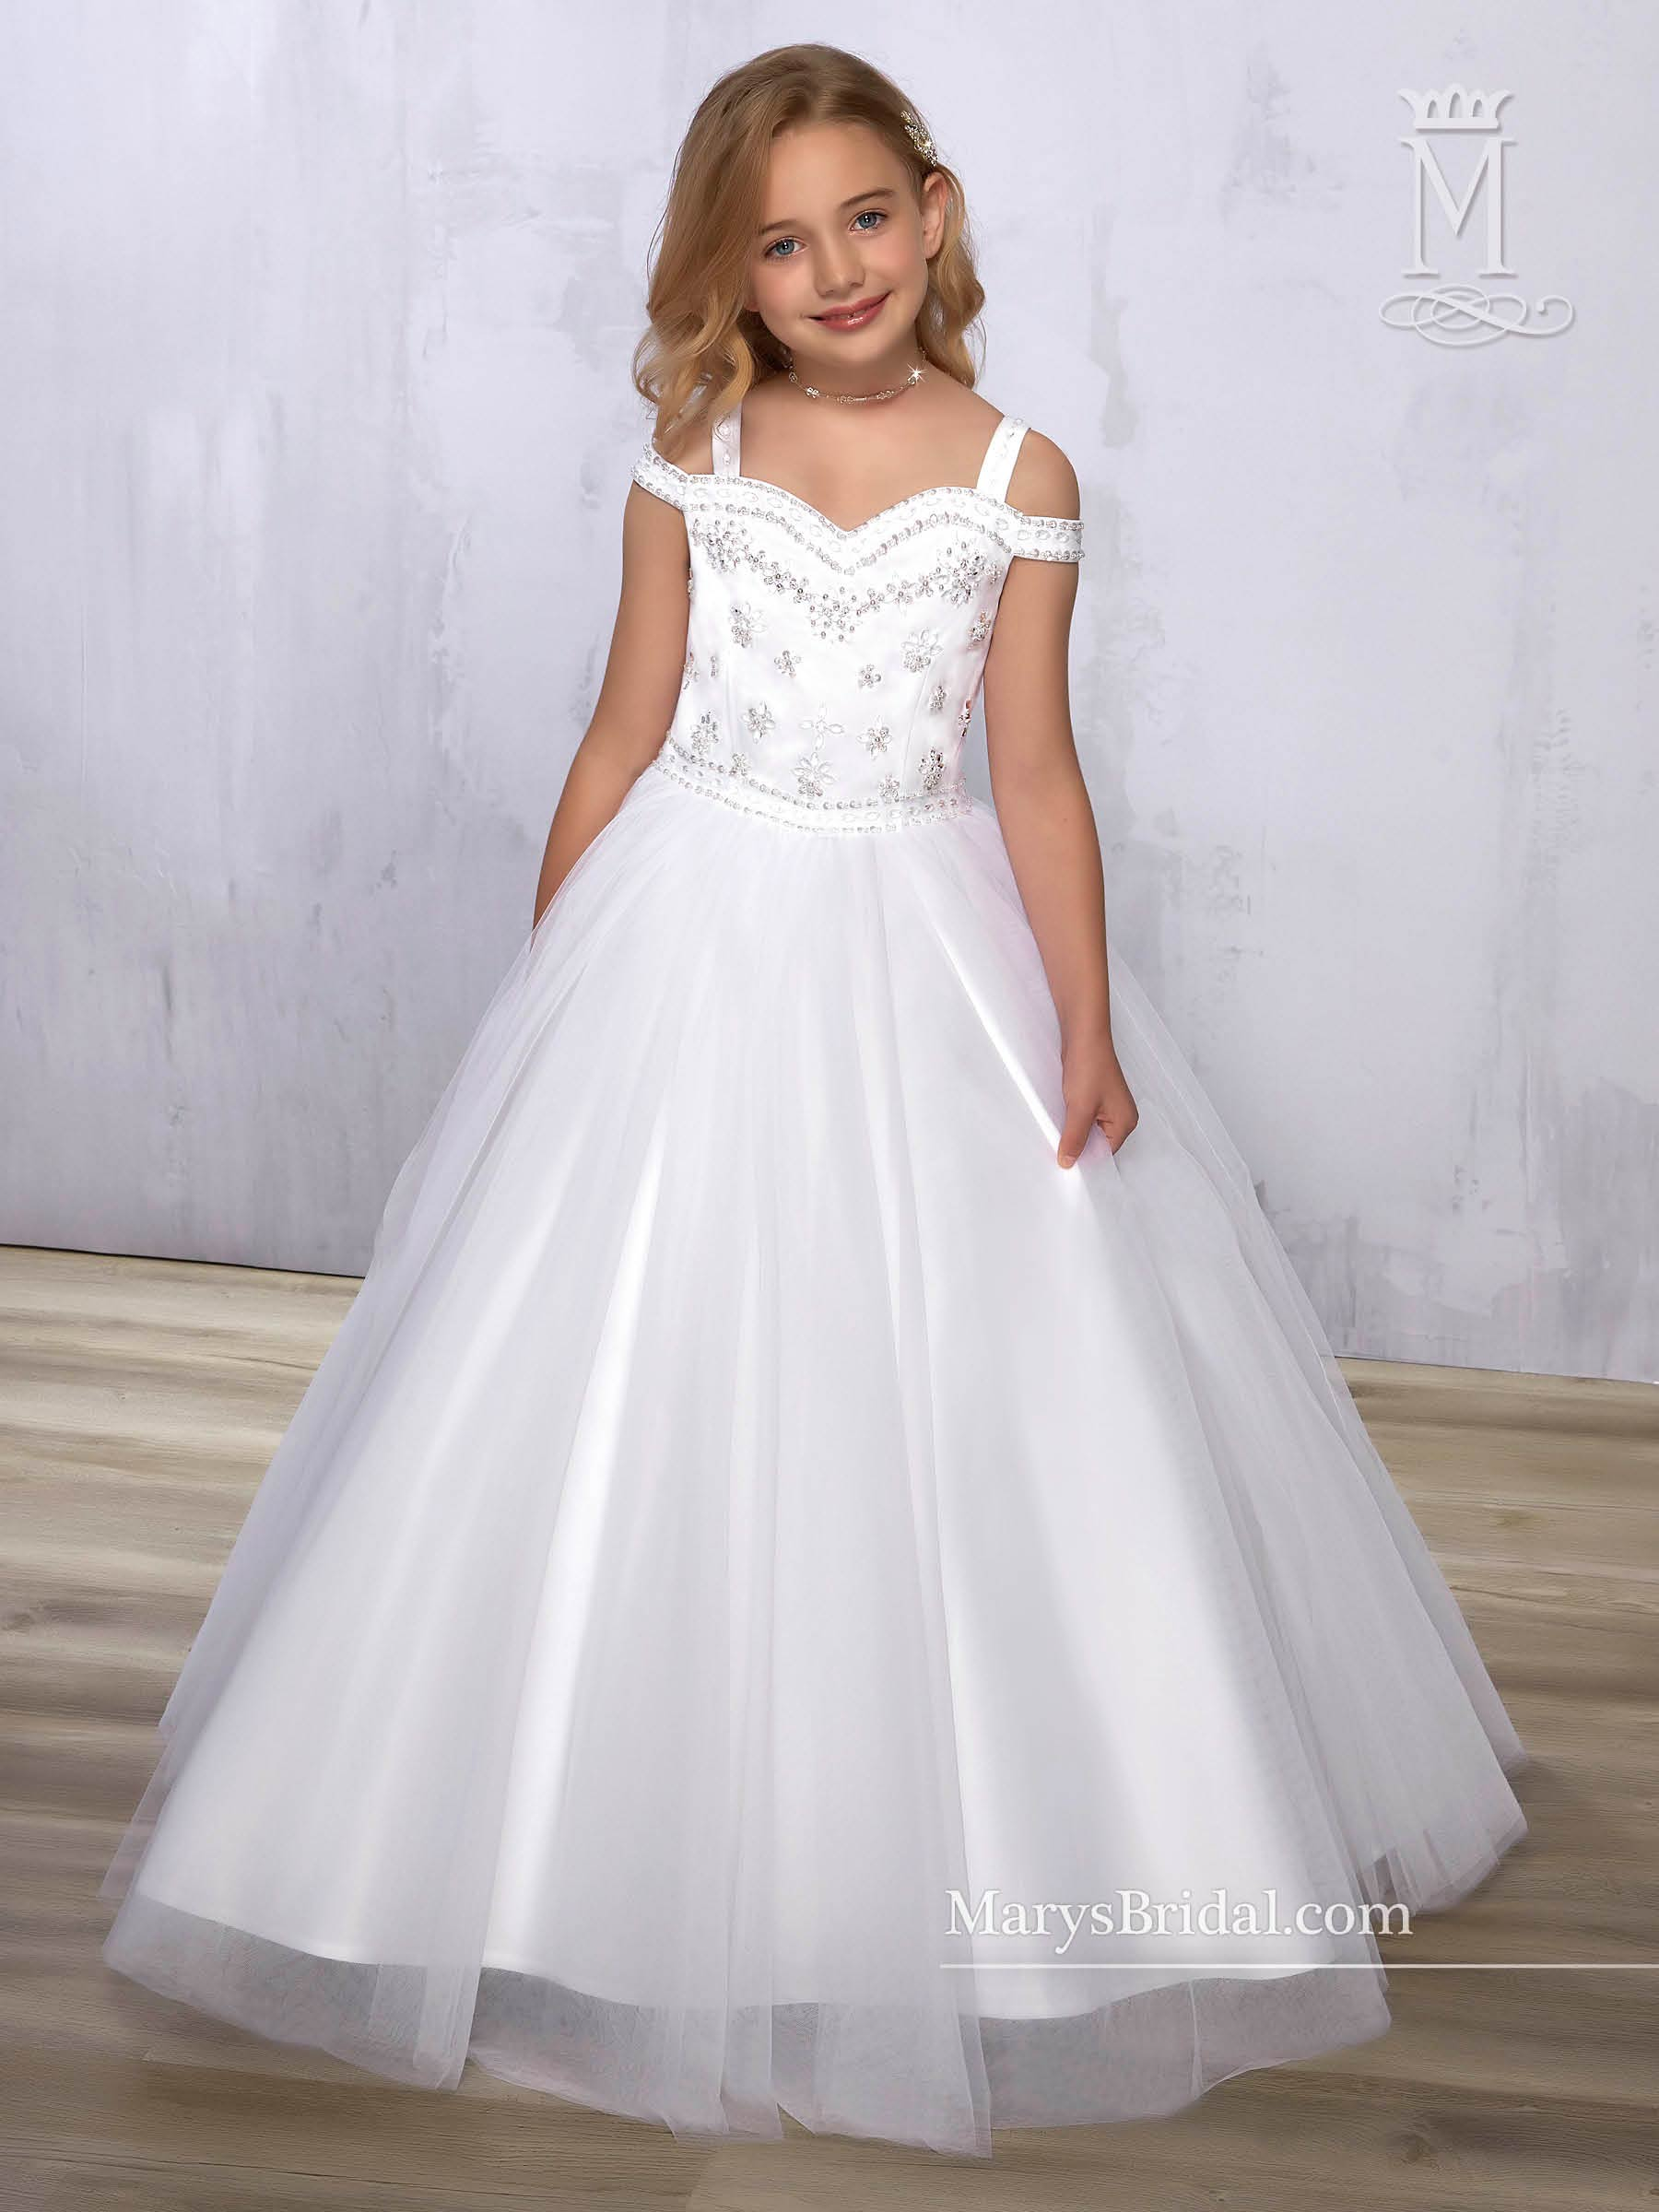 Angel Flower Girl Dresses Style F572 In Ivory White Color